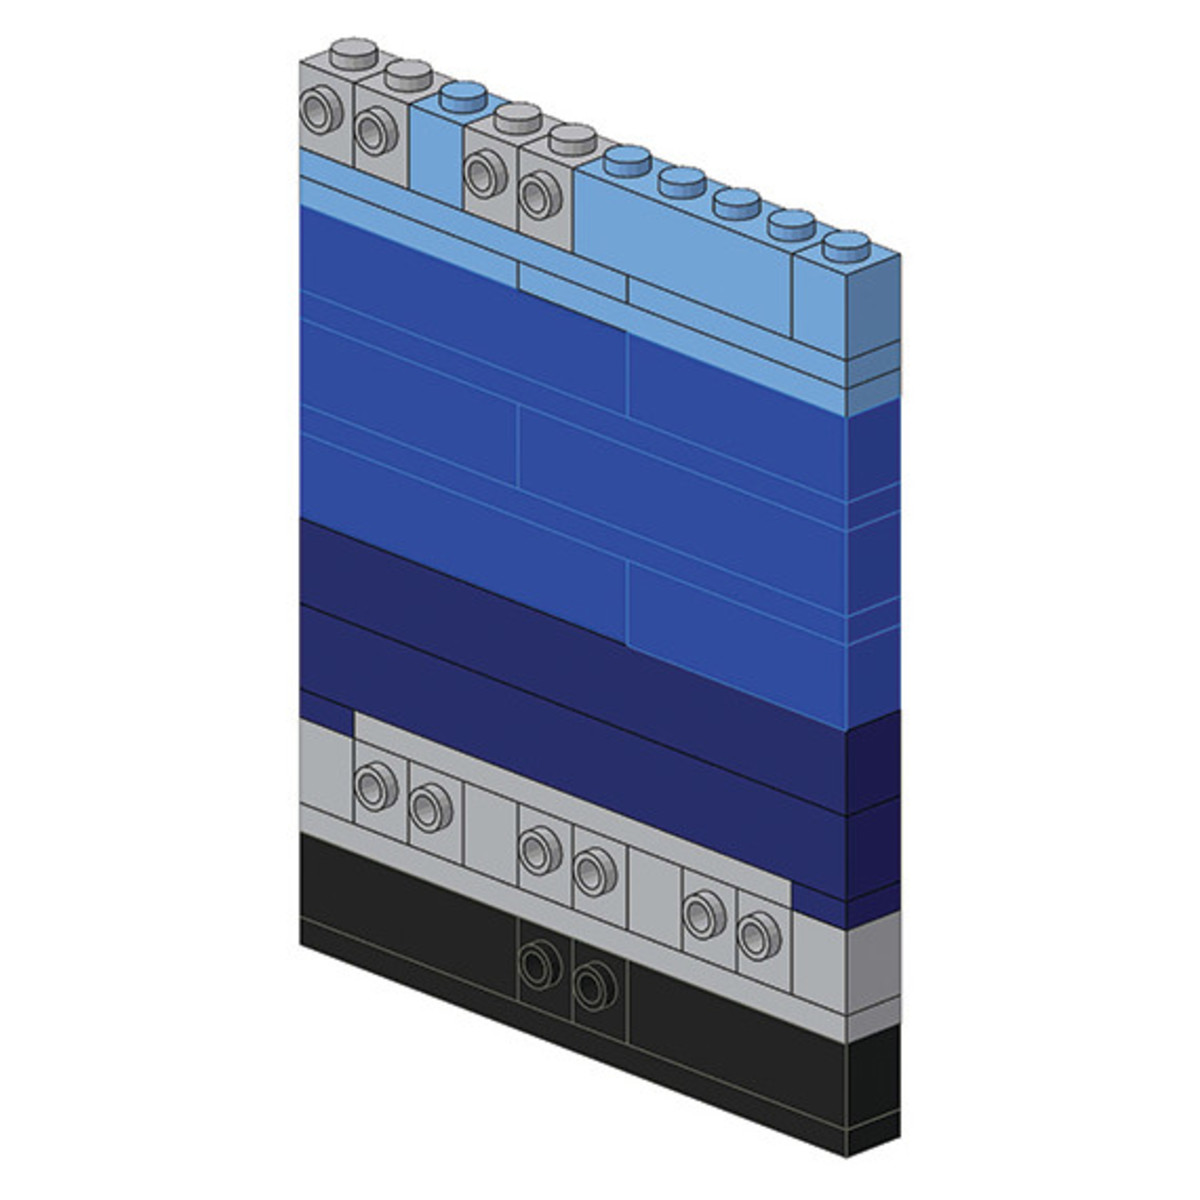 how-to-build-an-ipad-out-of-lego-09